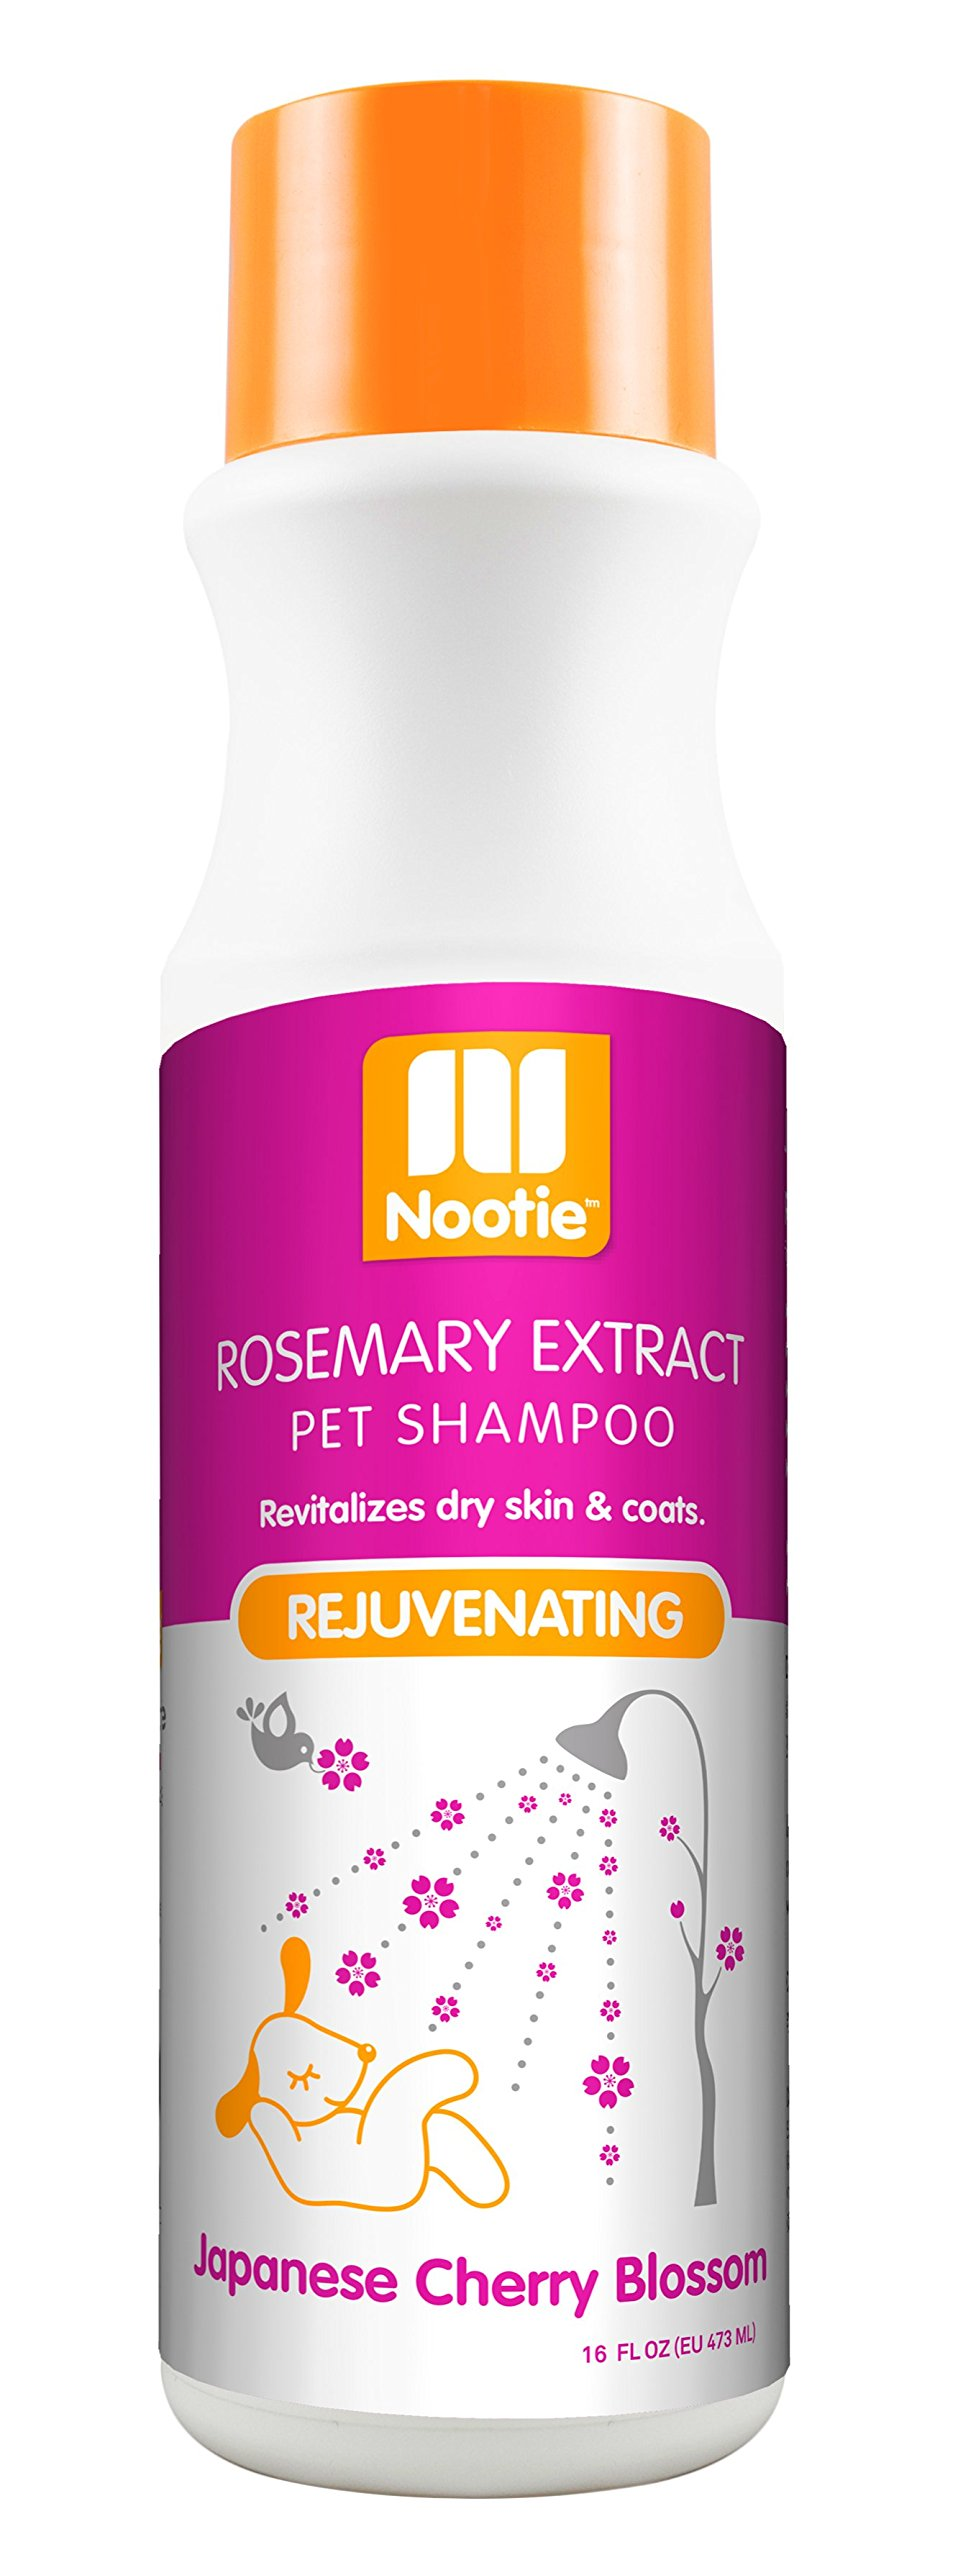 Nootie- Pet Shampoo, 1 Unit 16oz, Japanese Cherry Blossom